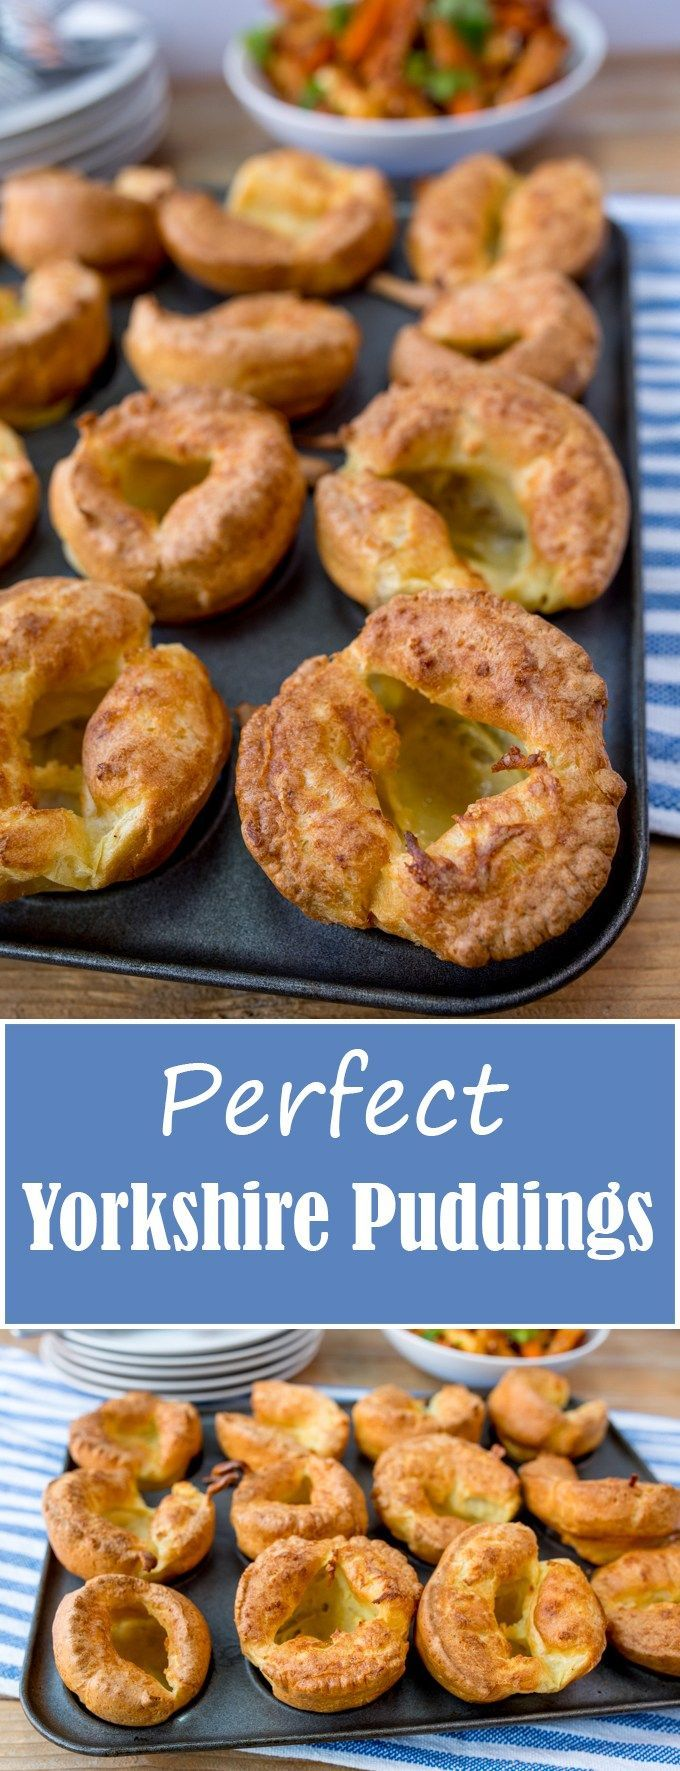 How to make the perfect Yorkshire puddings to go with your Sunday roast! Use plain flour? Allow the batter to rest? All your questions answered!